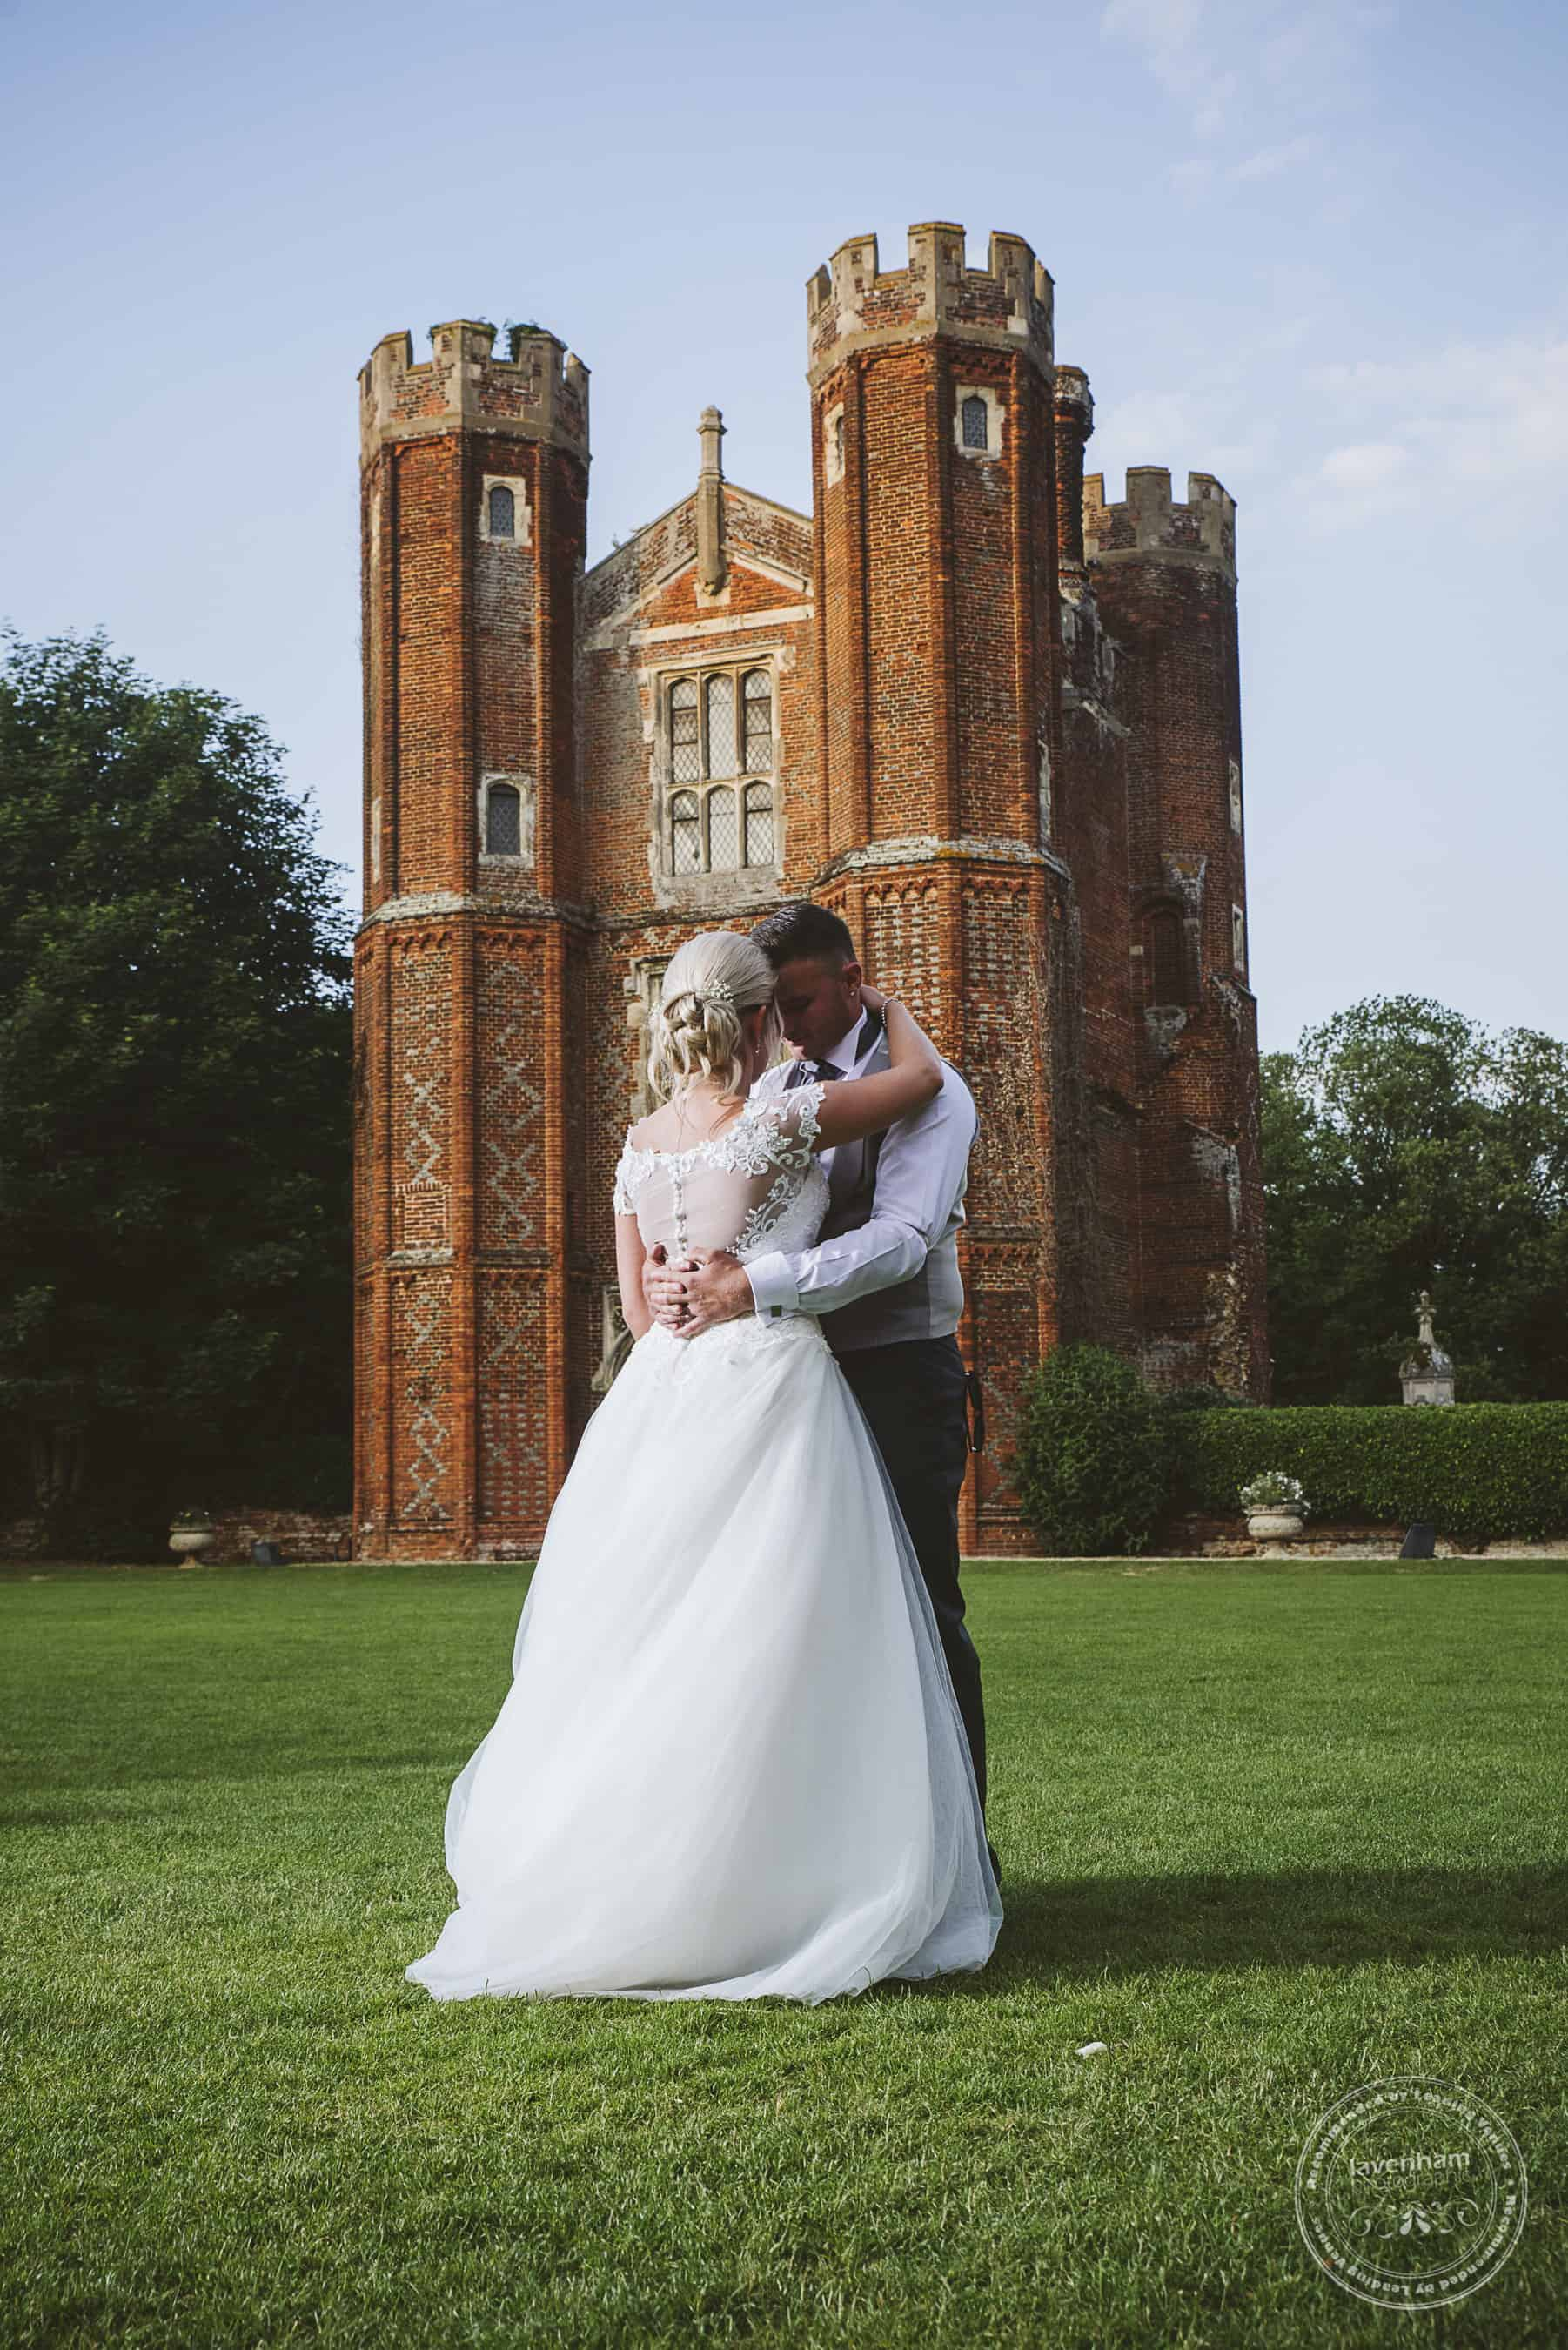 030618 Leez Priory Wedding Photography Lavenham Photographic 098